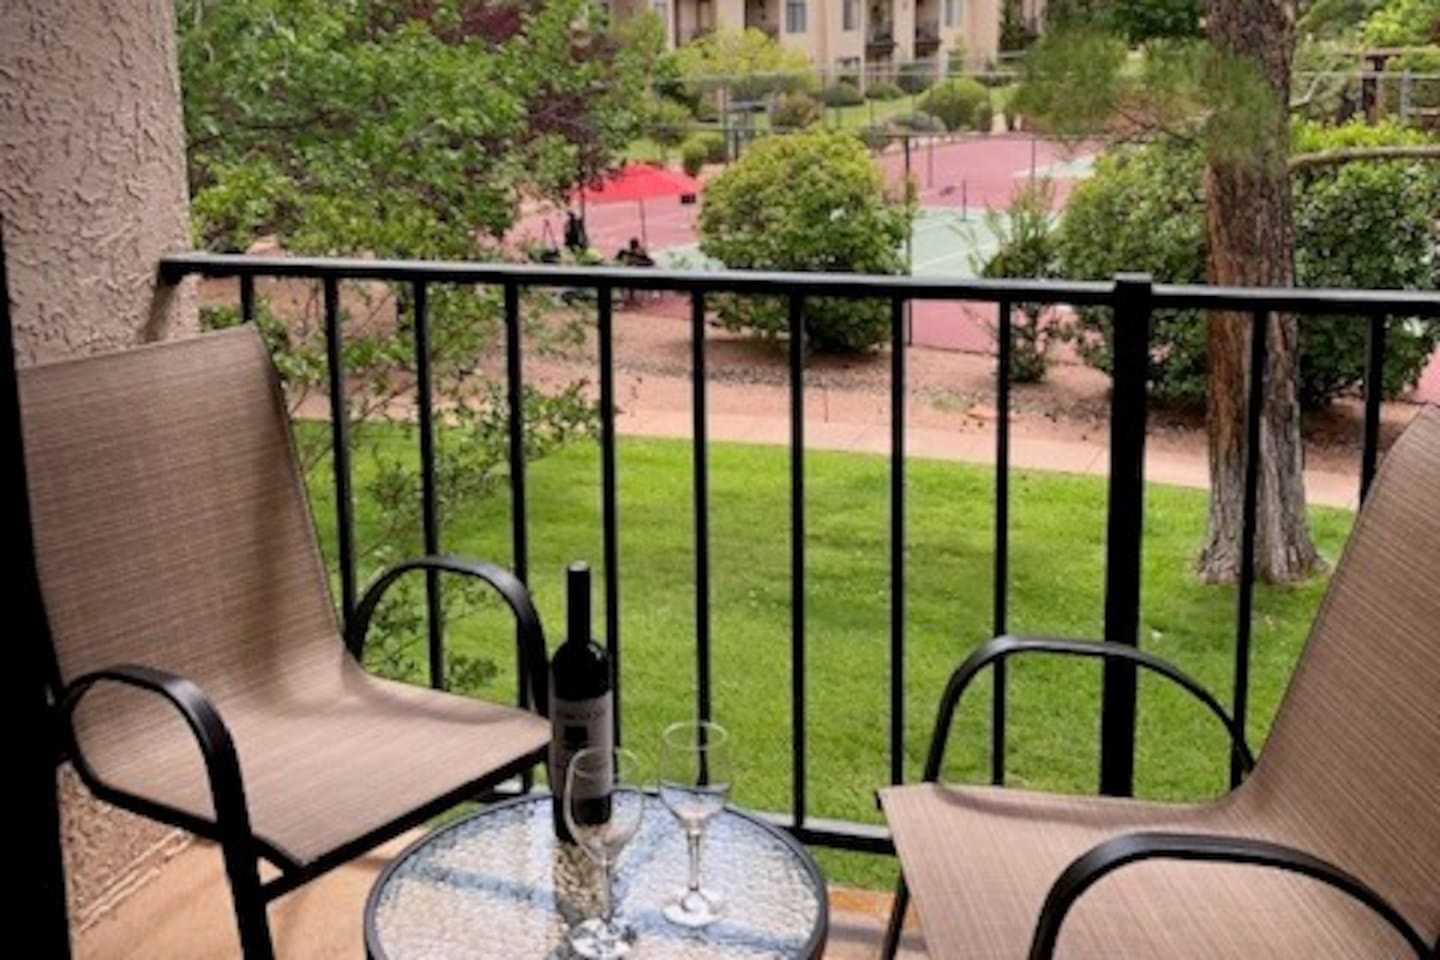 Enjoy a glass of wine and relax on the balcony